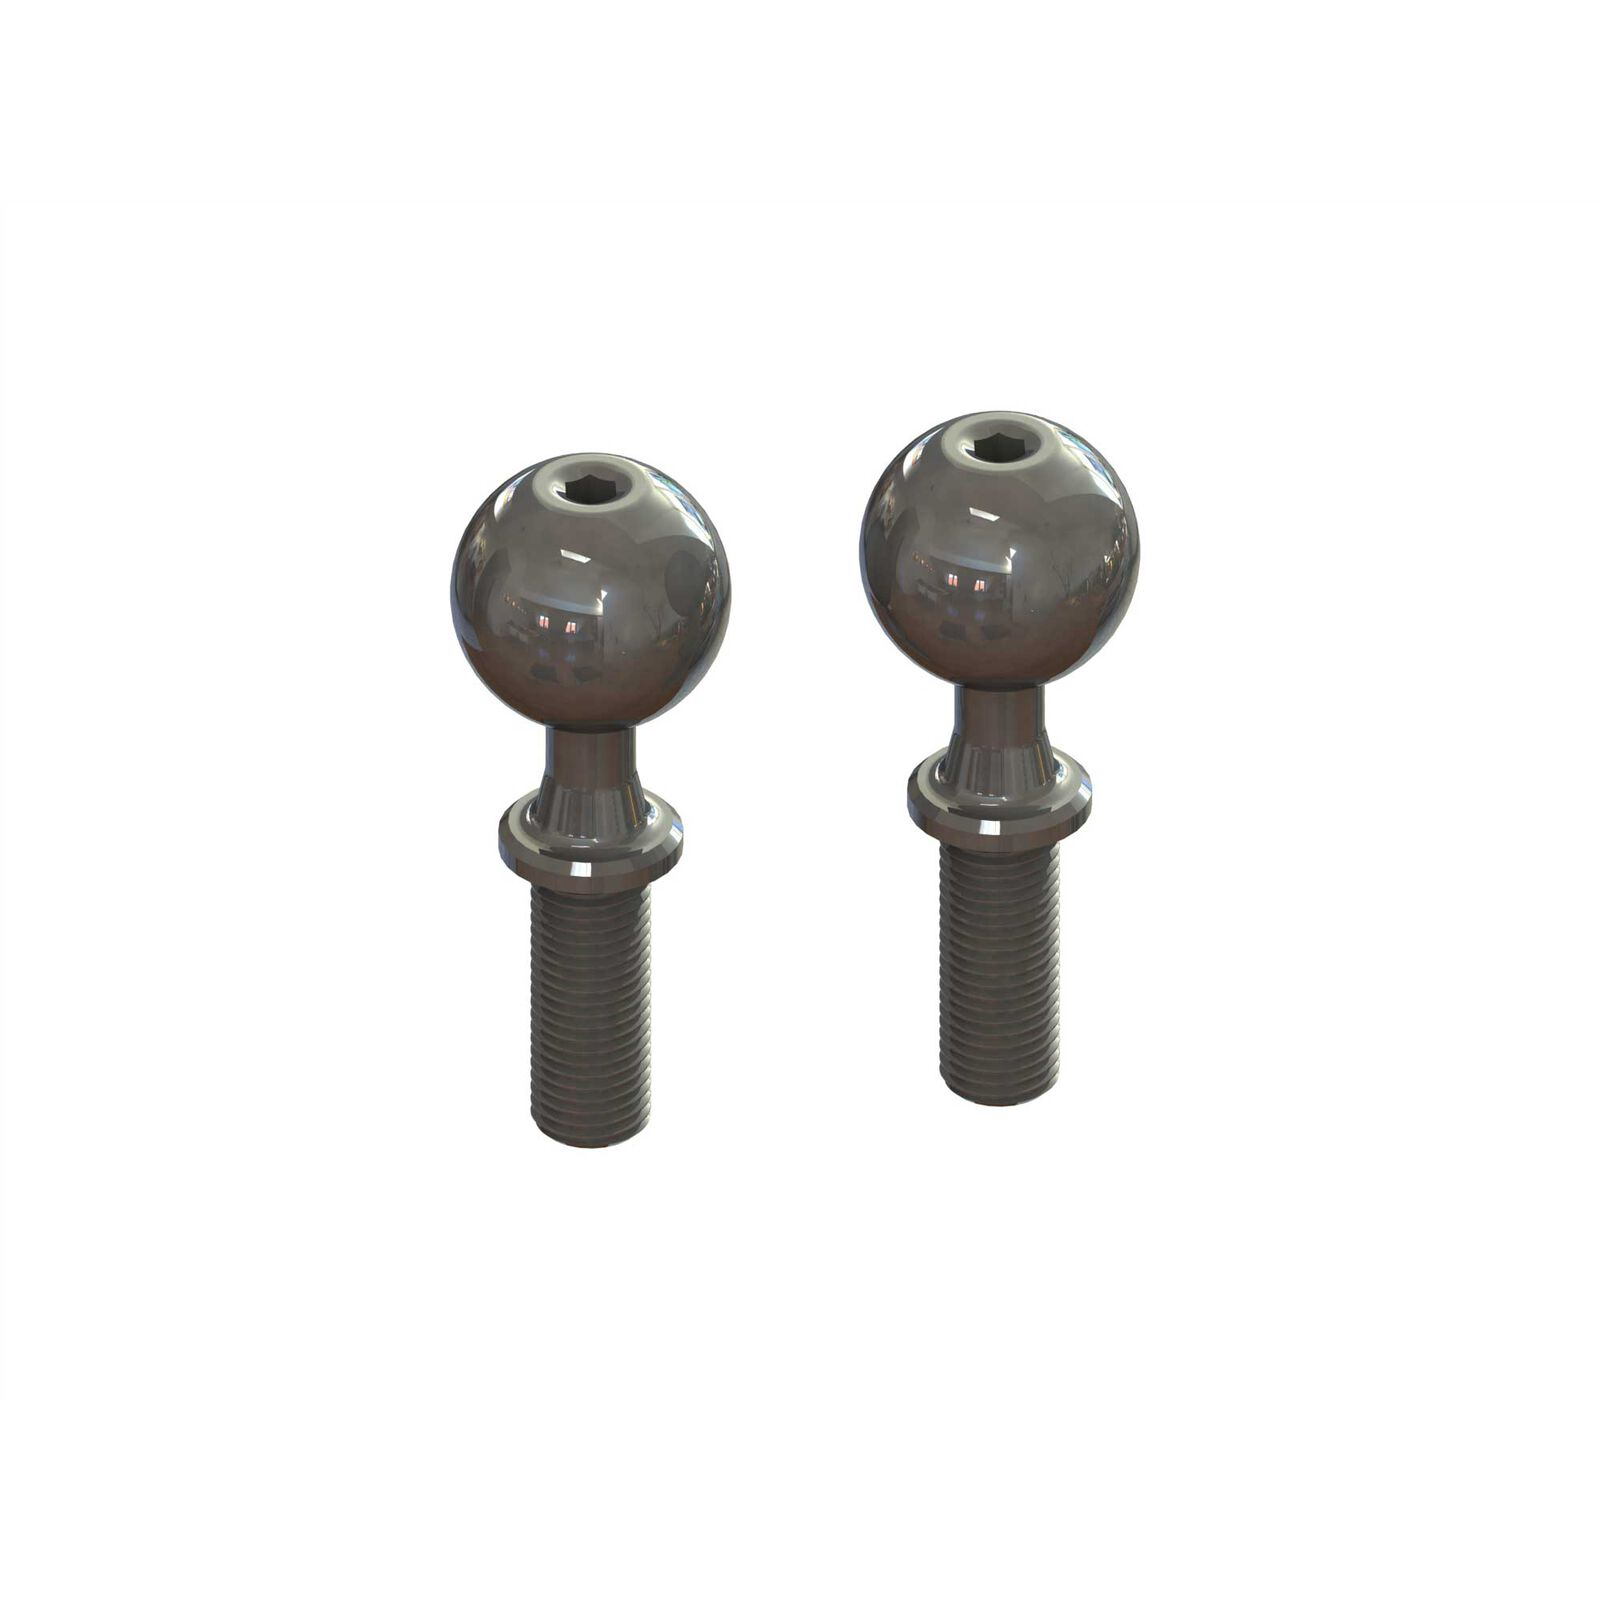 Pivot Ball, Fine Thread M6x14x37mm (2): EXB